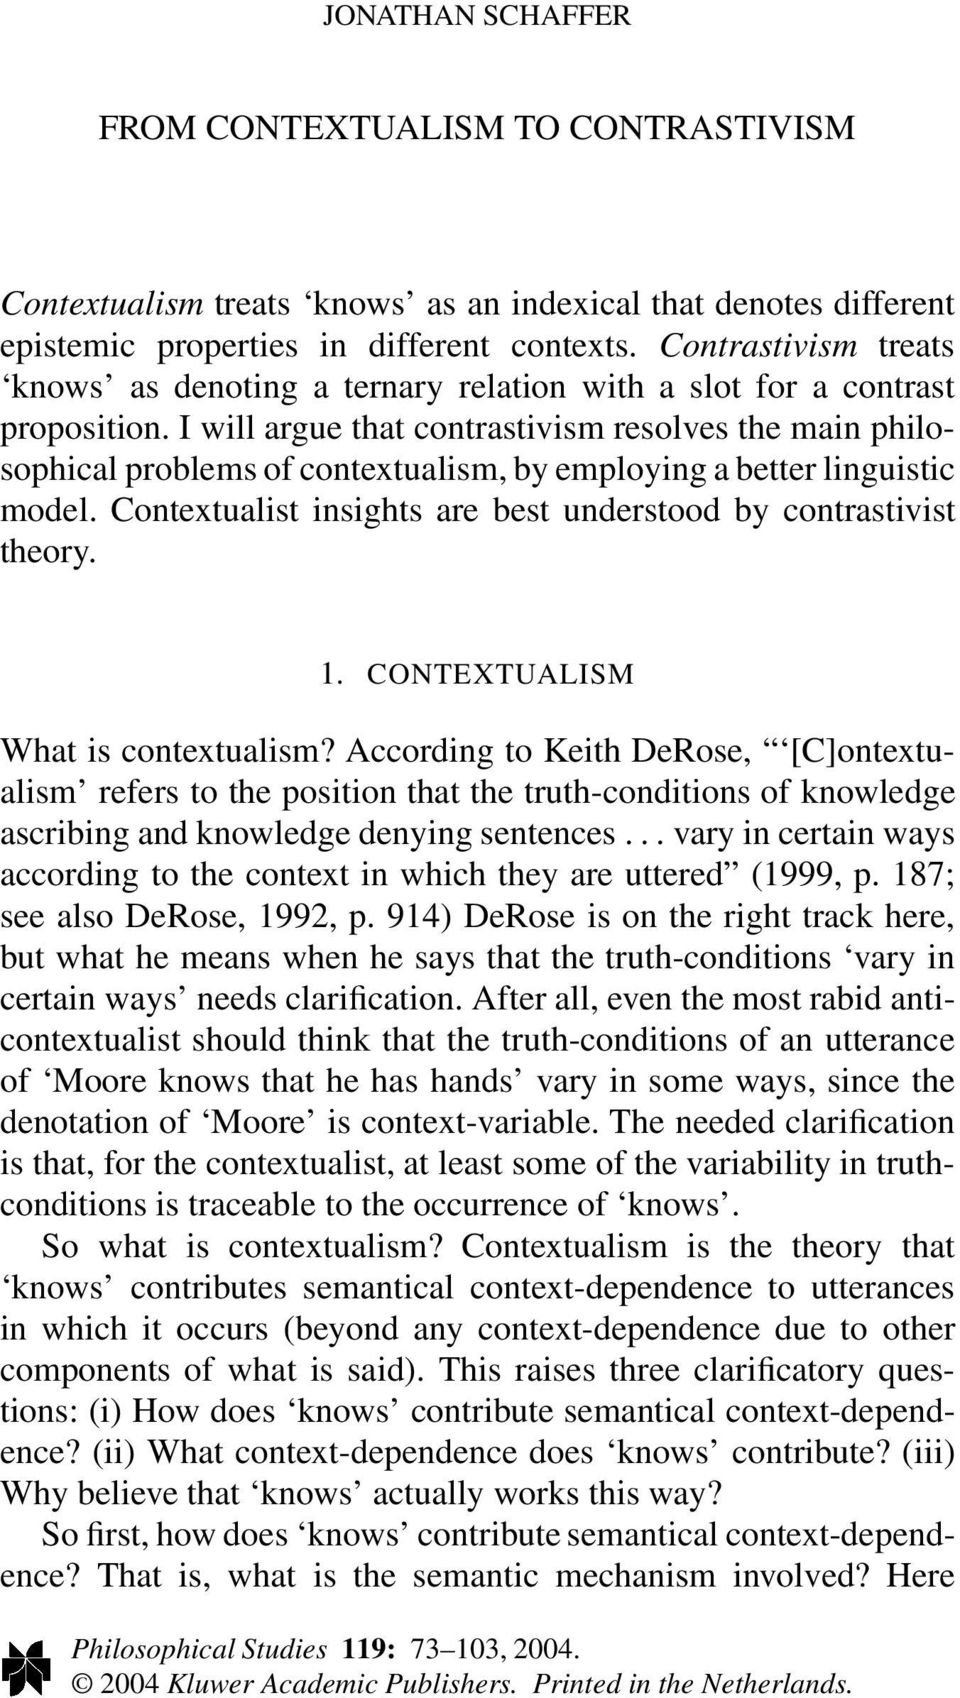 I will argue that contrastivism resolves the main philosophical problems of contextualism, by employing a better linguistic model. Contextualist insights are best understood by contrastivist theory.